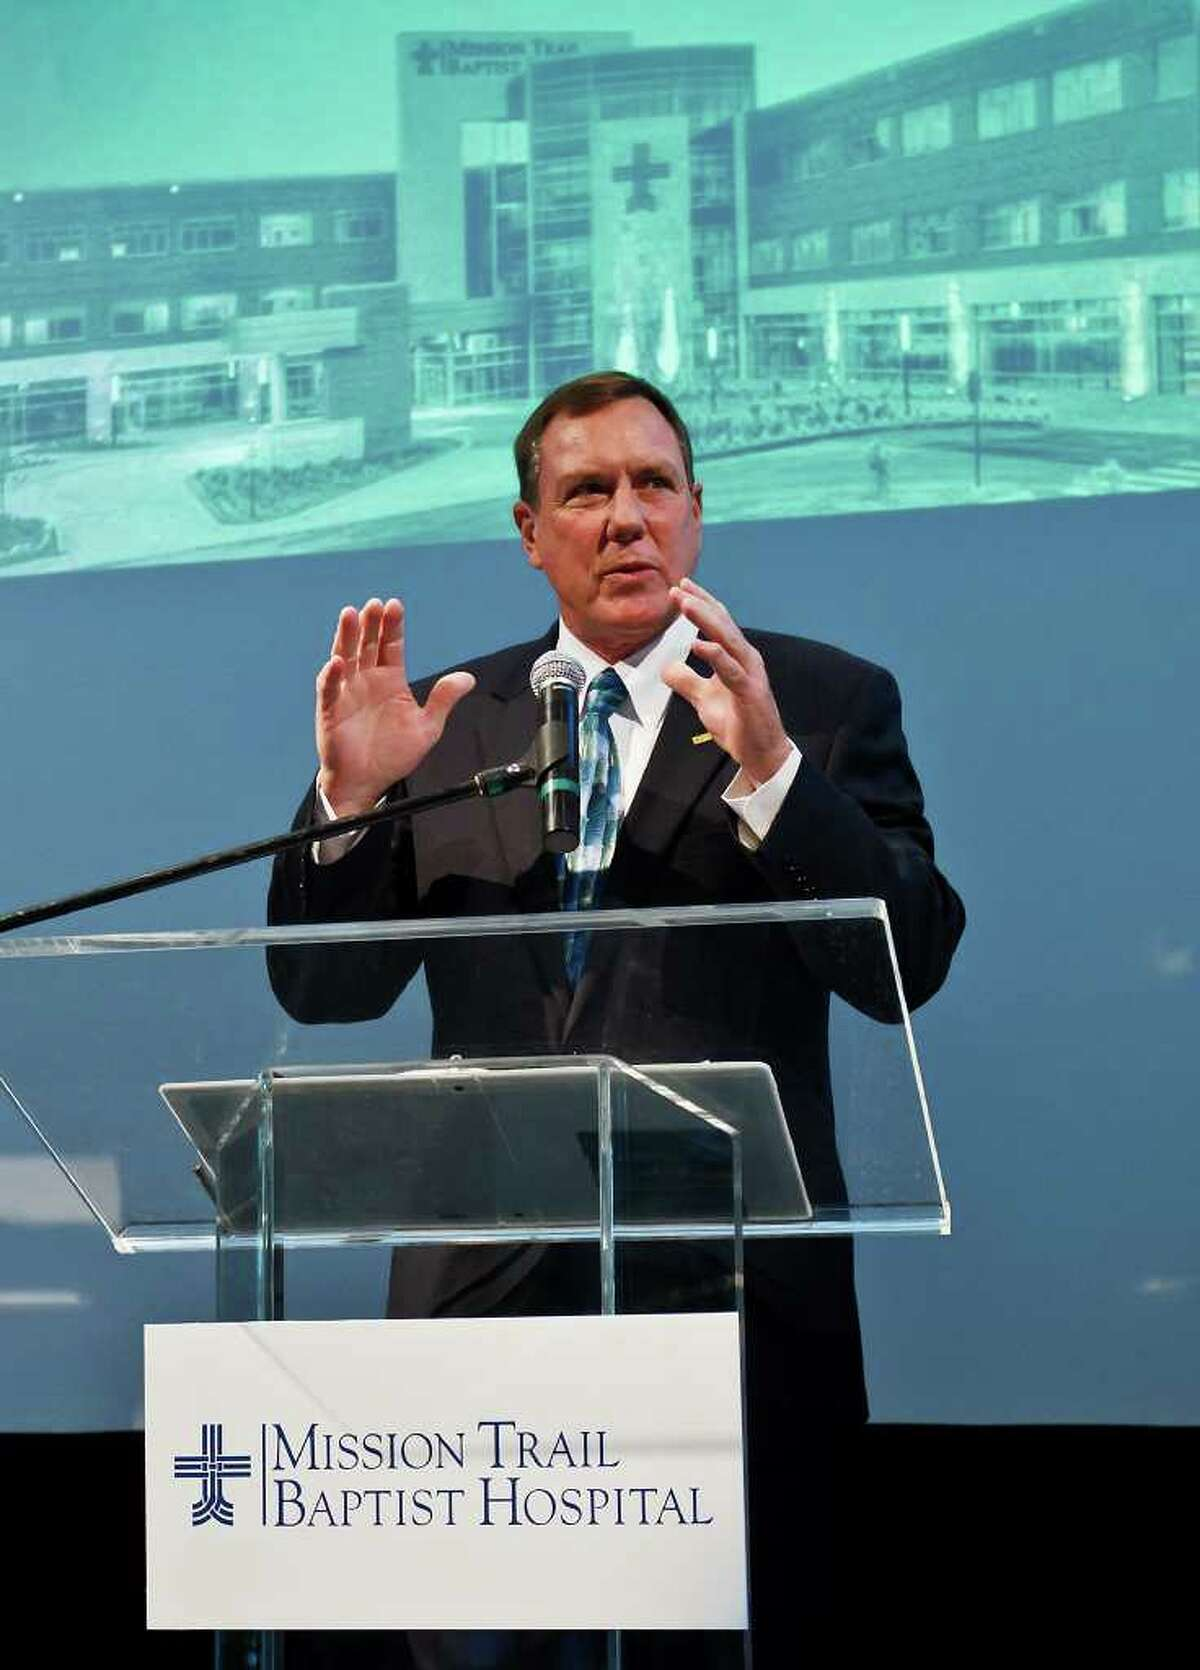 Andy Harris, President of Mission Trail Baptist Hospital, addresses the audience during a preview celebration at the hospital last week. The new hospital opened Monday.